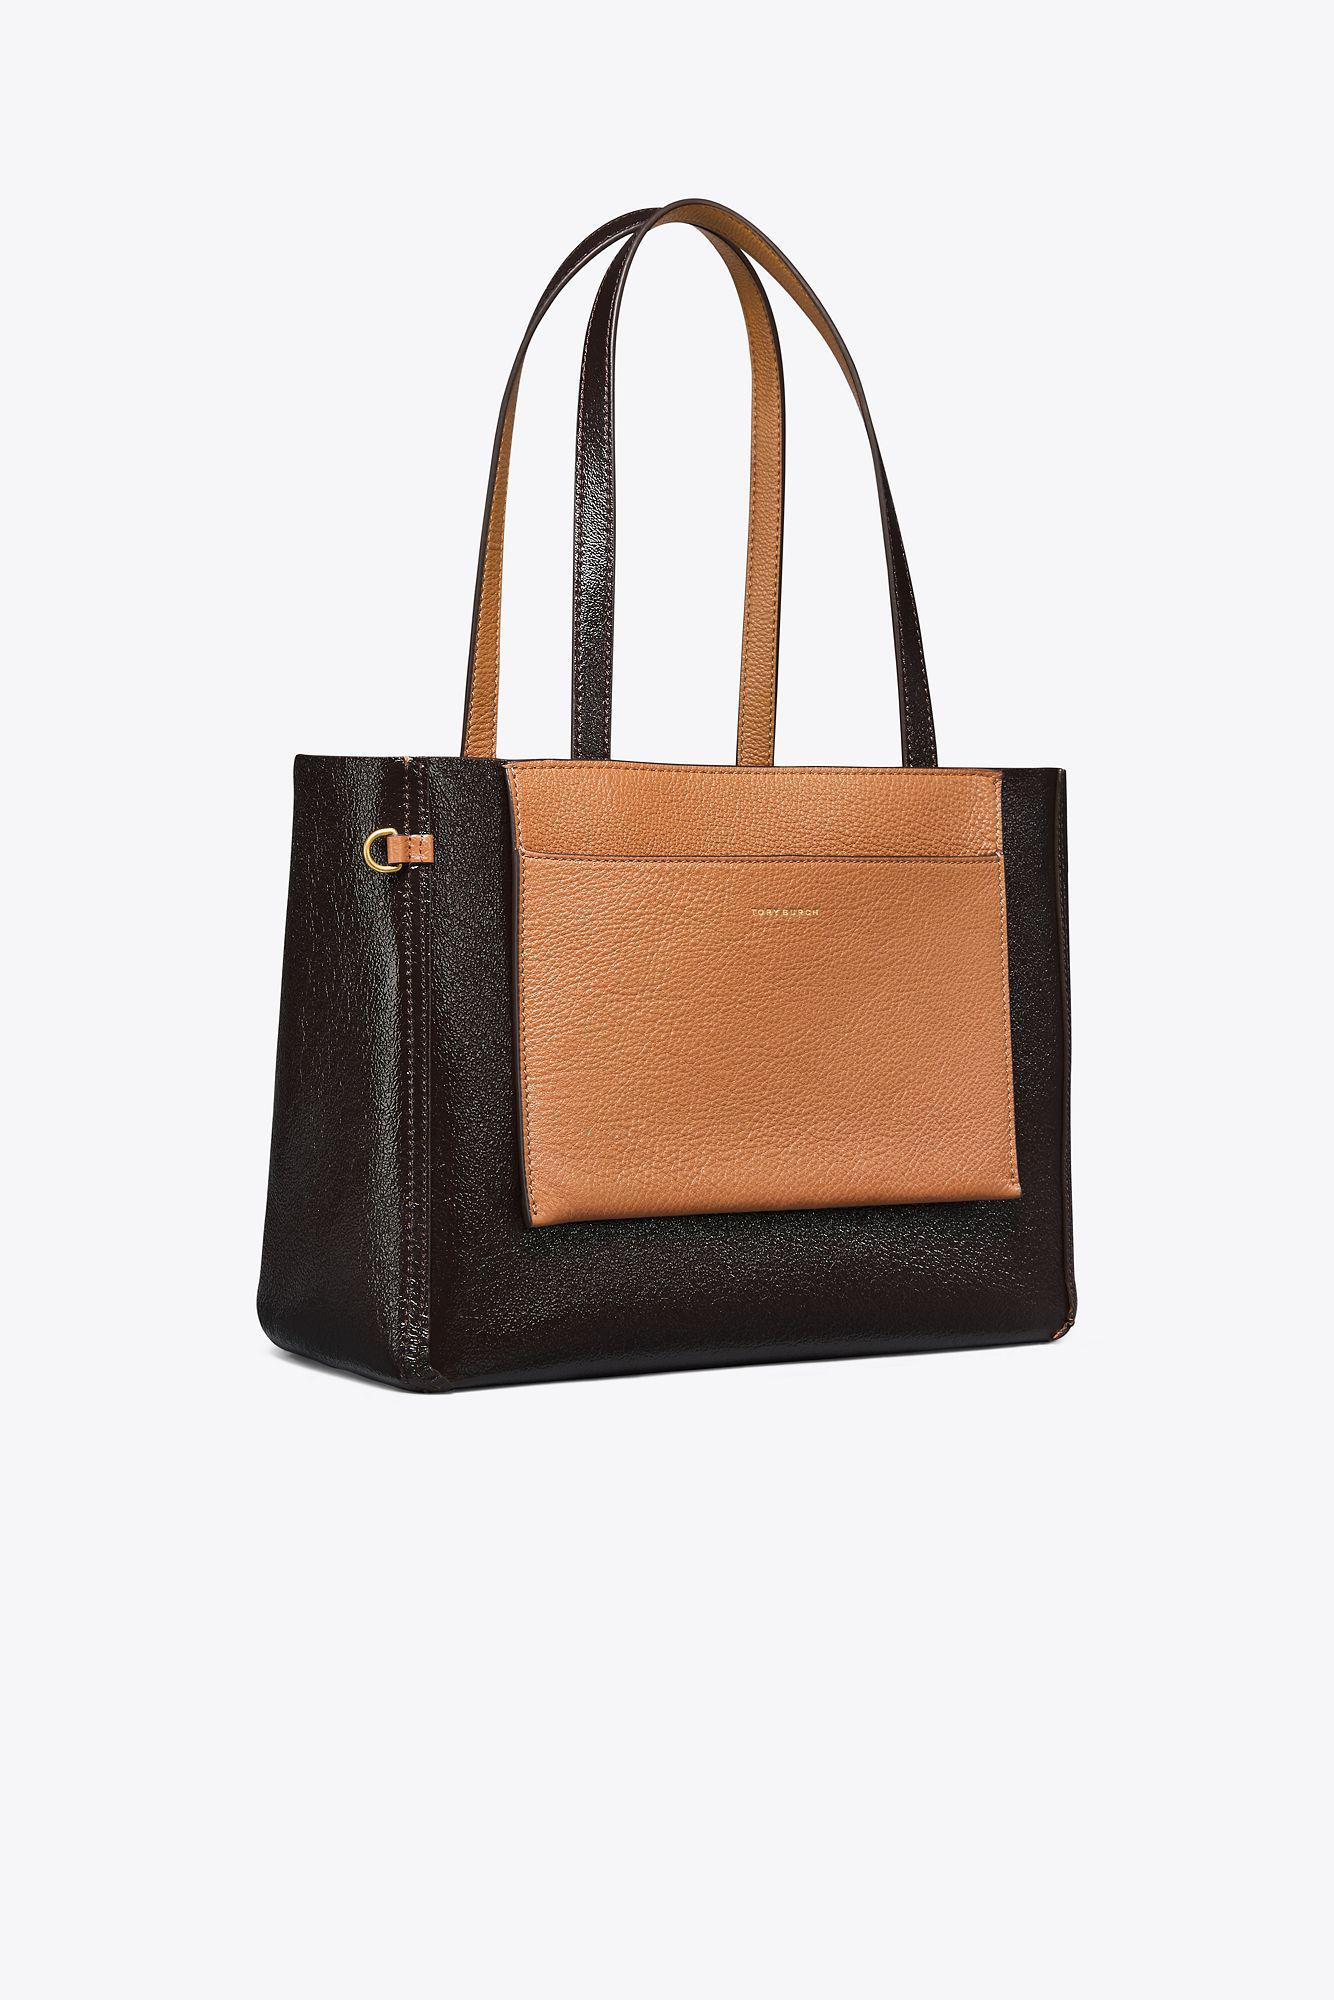 4f6008509c Lyst - Tory Burch Perry Reversible Mini Tote in Brown